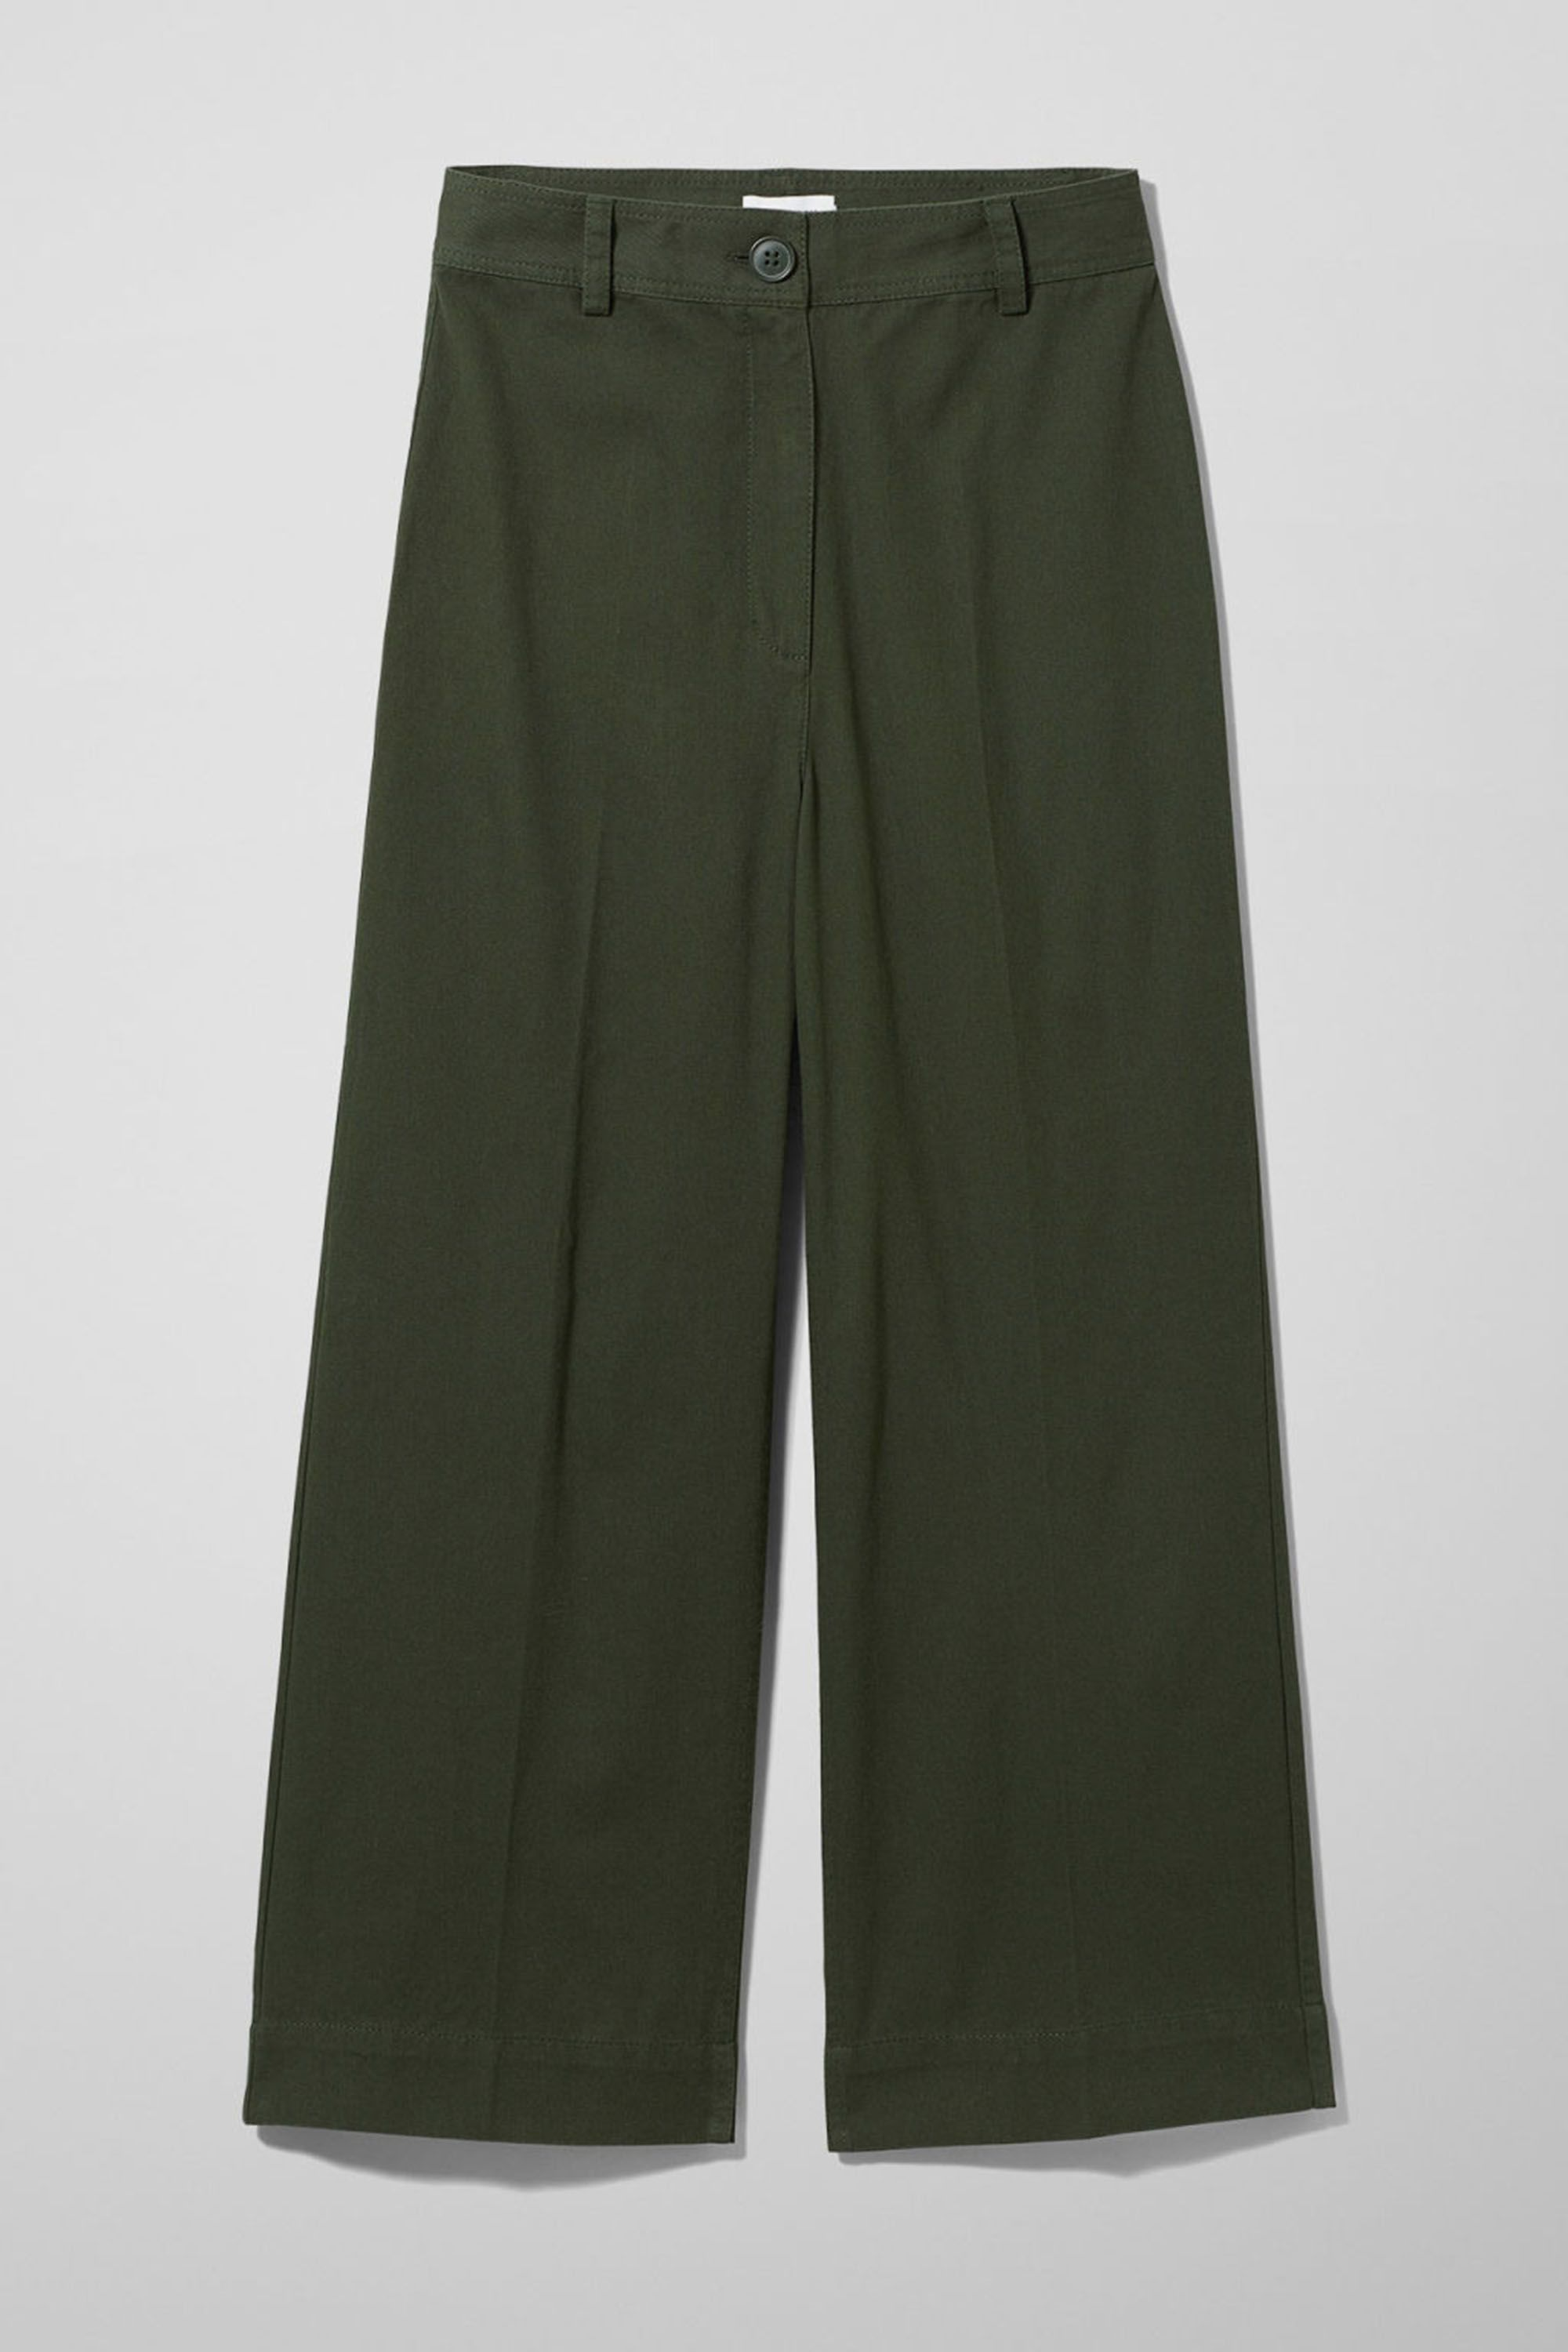 1888fe9b6adc Wide leg trousers trend - how to wear wide leg trousers